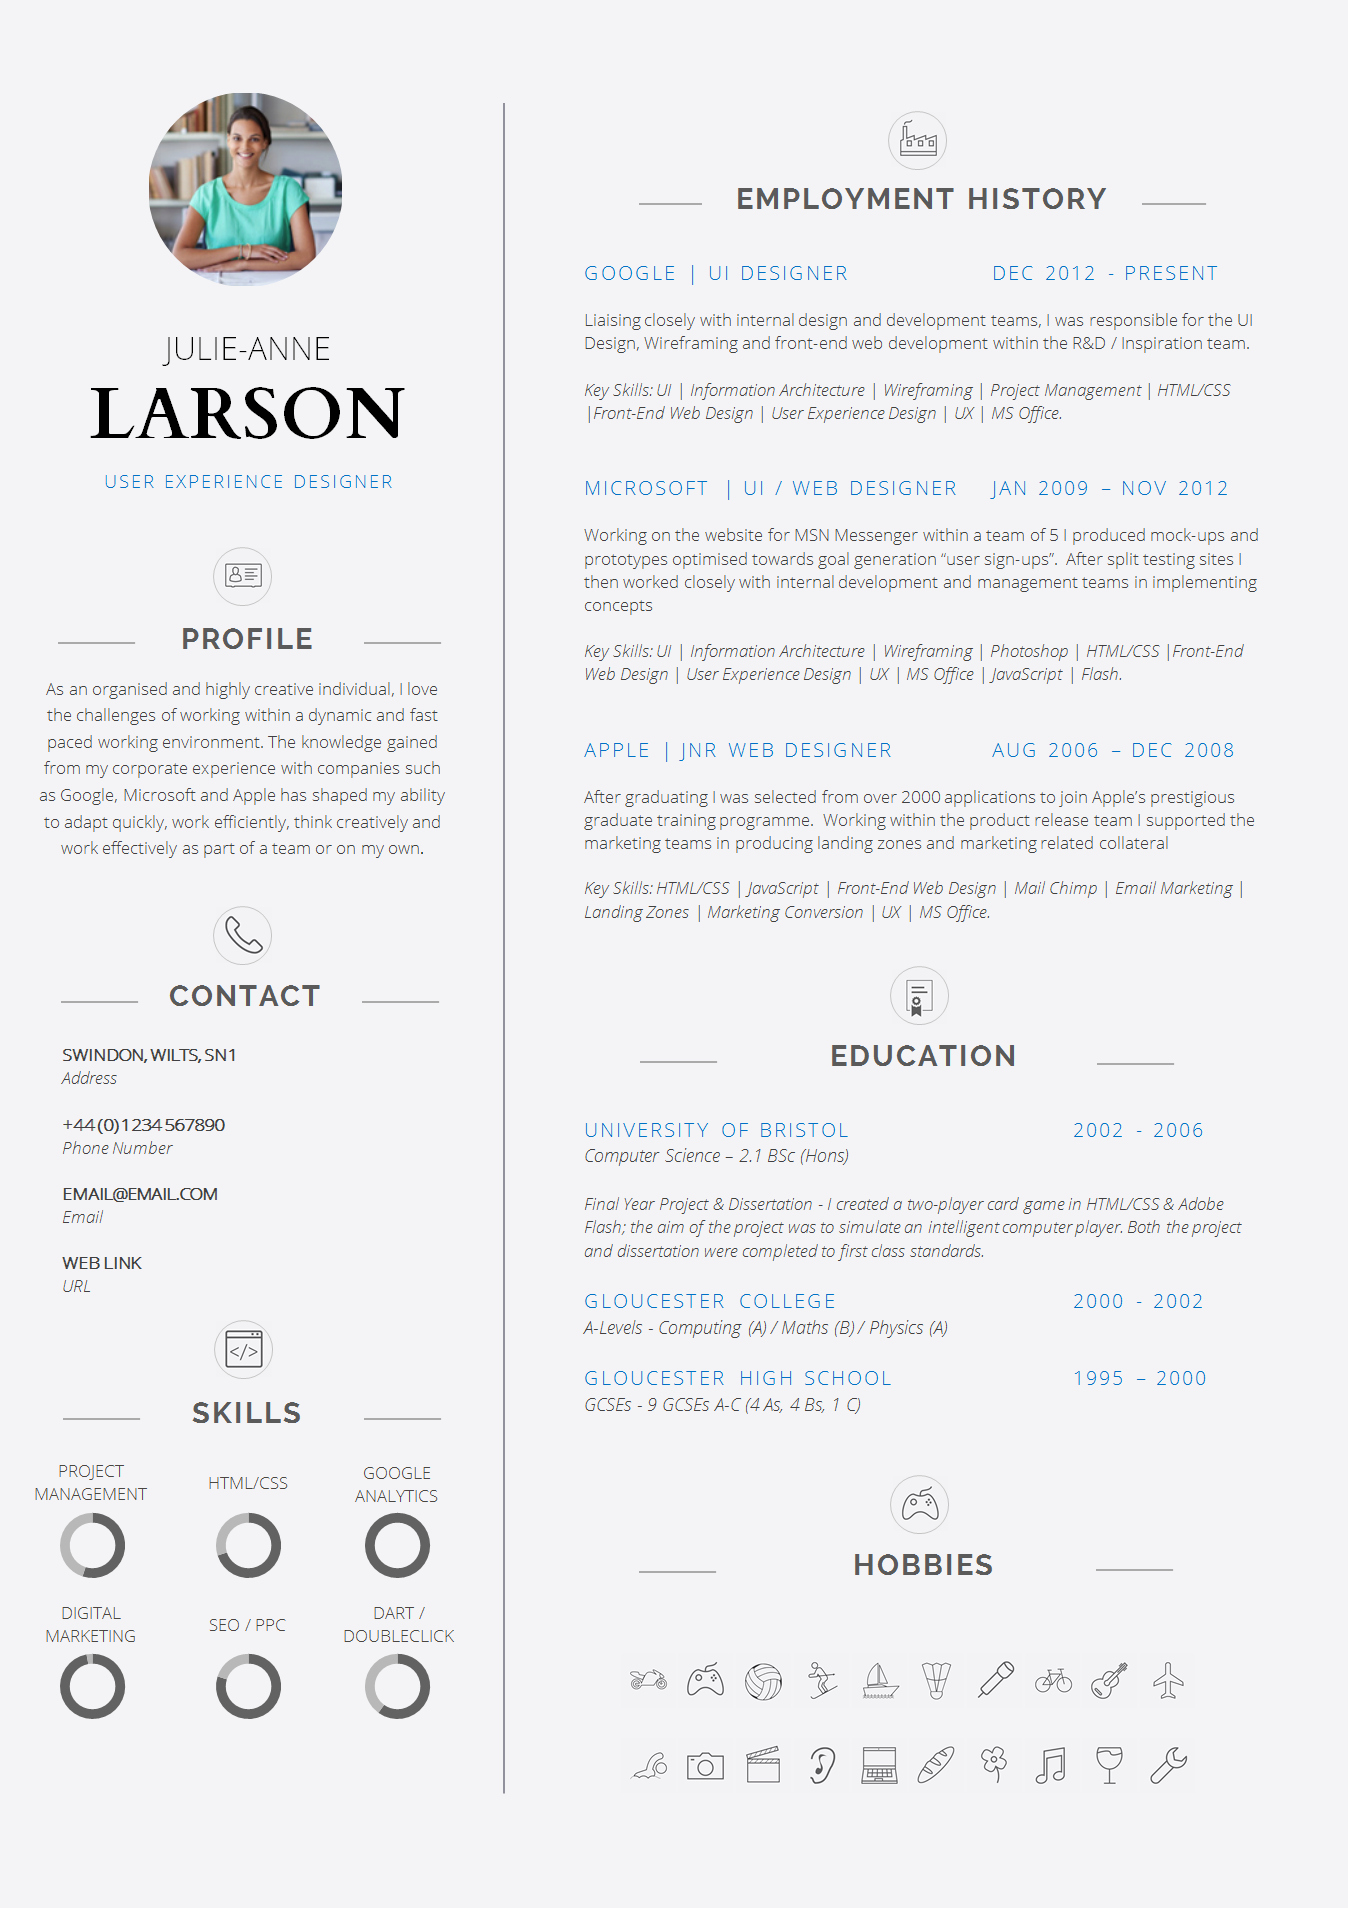 Professional Curriculum Vitae Template Download New 13 Slick and Highly Professional Cv Templates